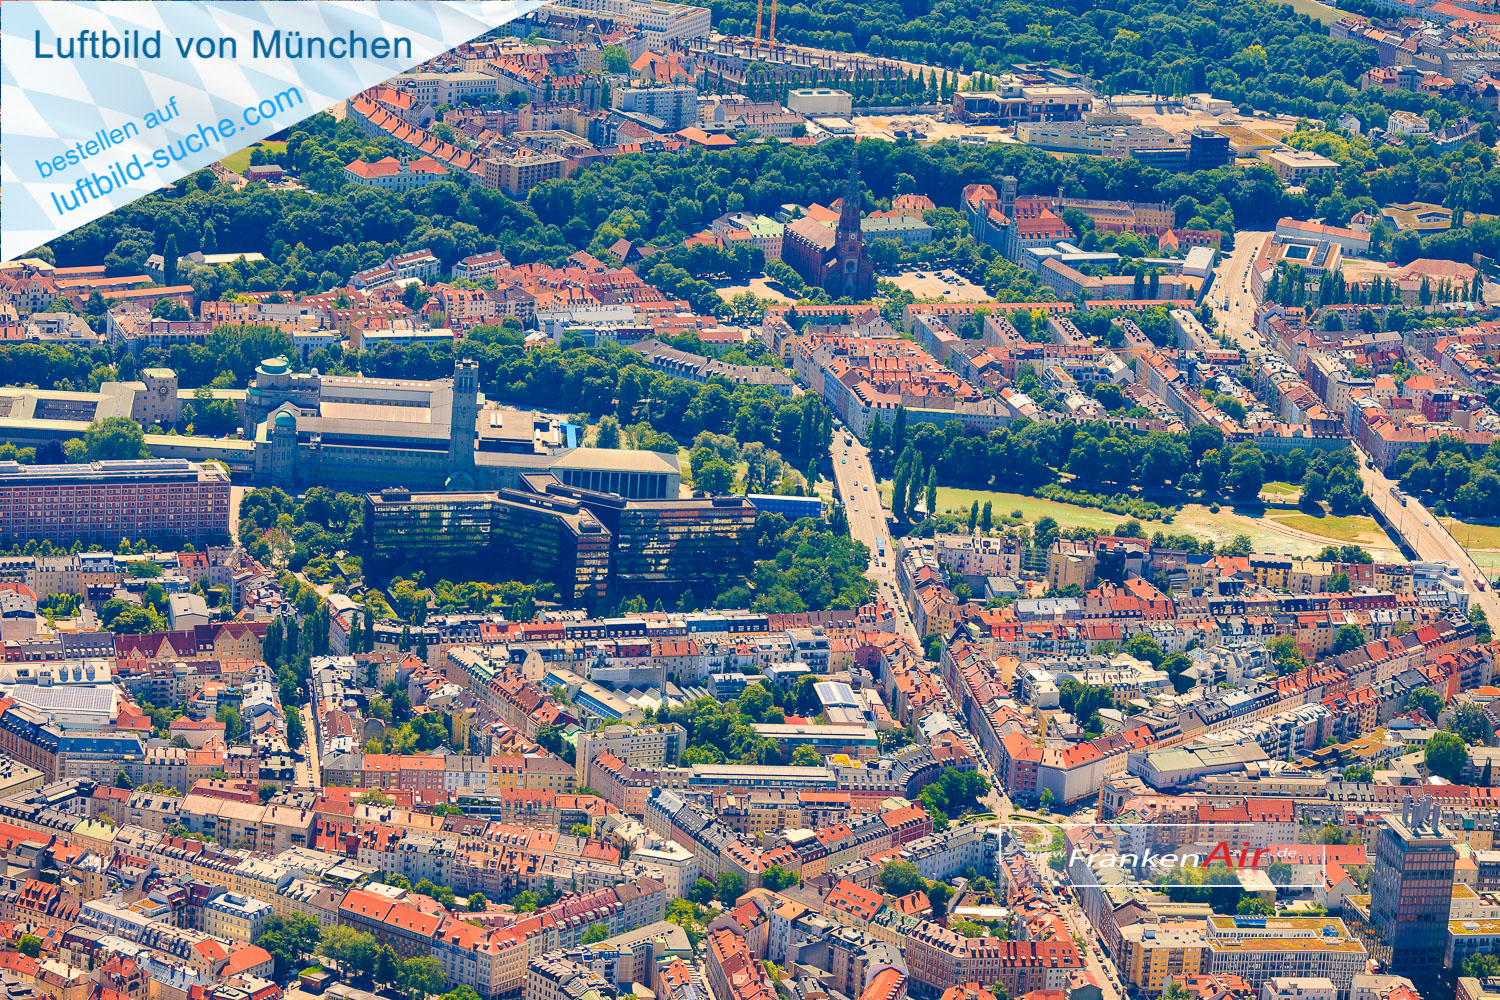 Museumsinsel-muenchen-17-2345